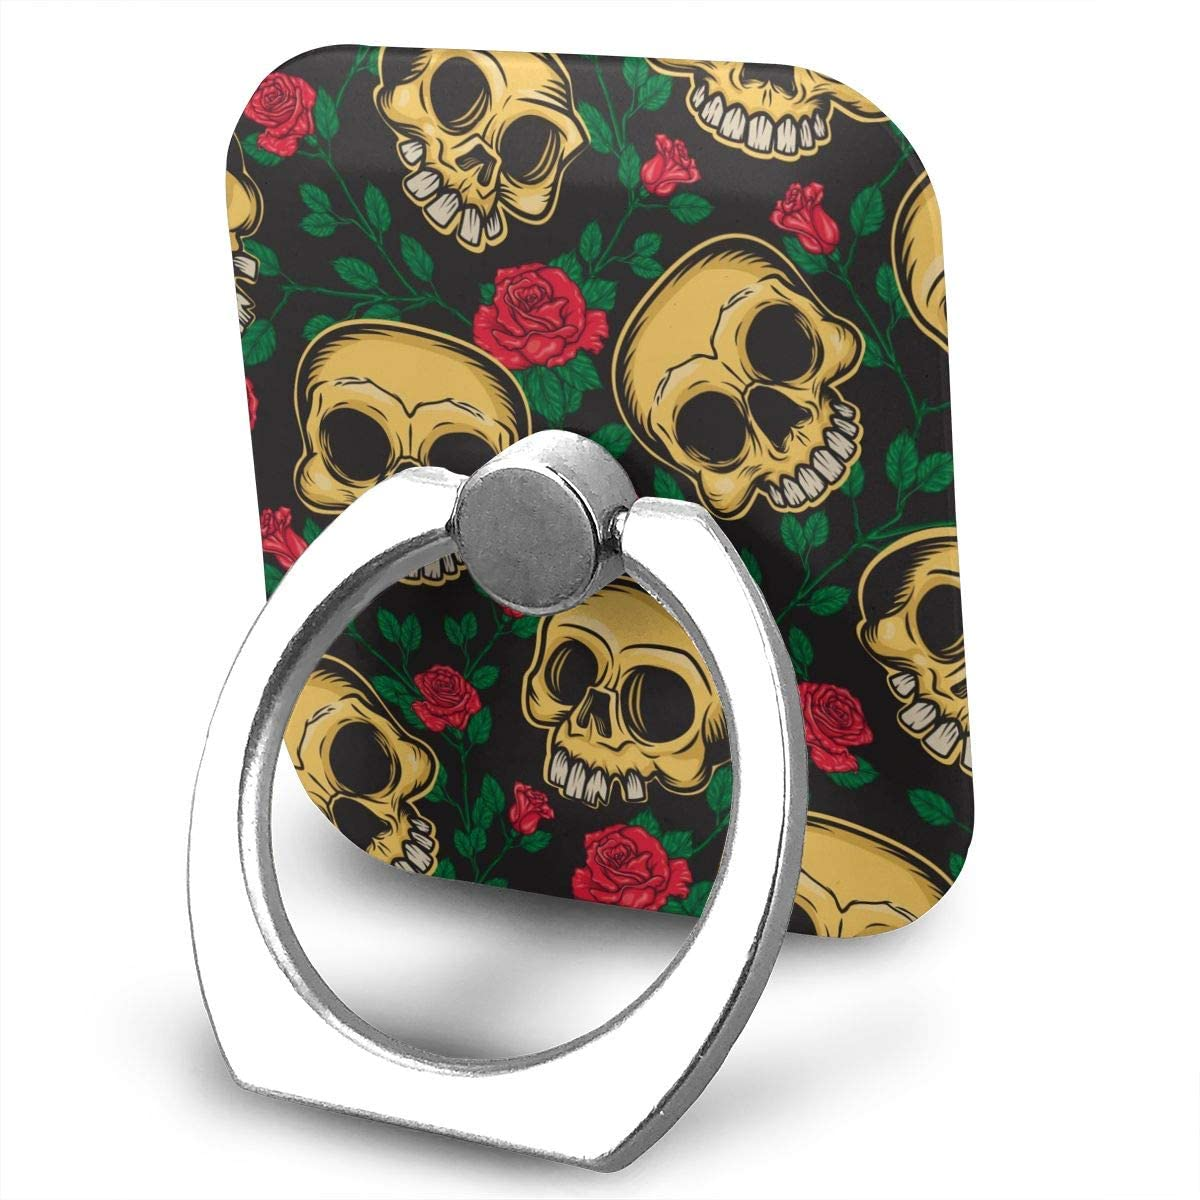 SLHFPX Universal Phone Ring Holder Skulls Flowers in Mexican Style Square Cell Phone Ring Stand Adjustable 360°Rotation Finger Grip-Silver Mobile Phone Stand for Women Kids Men Ladies